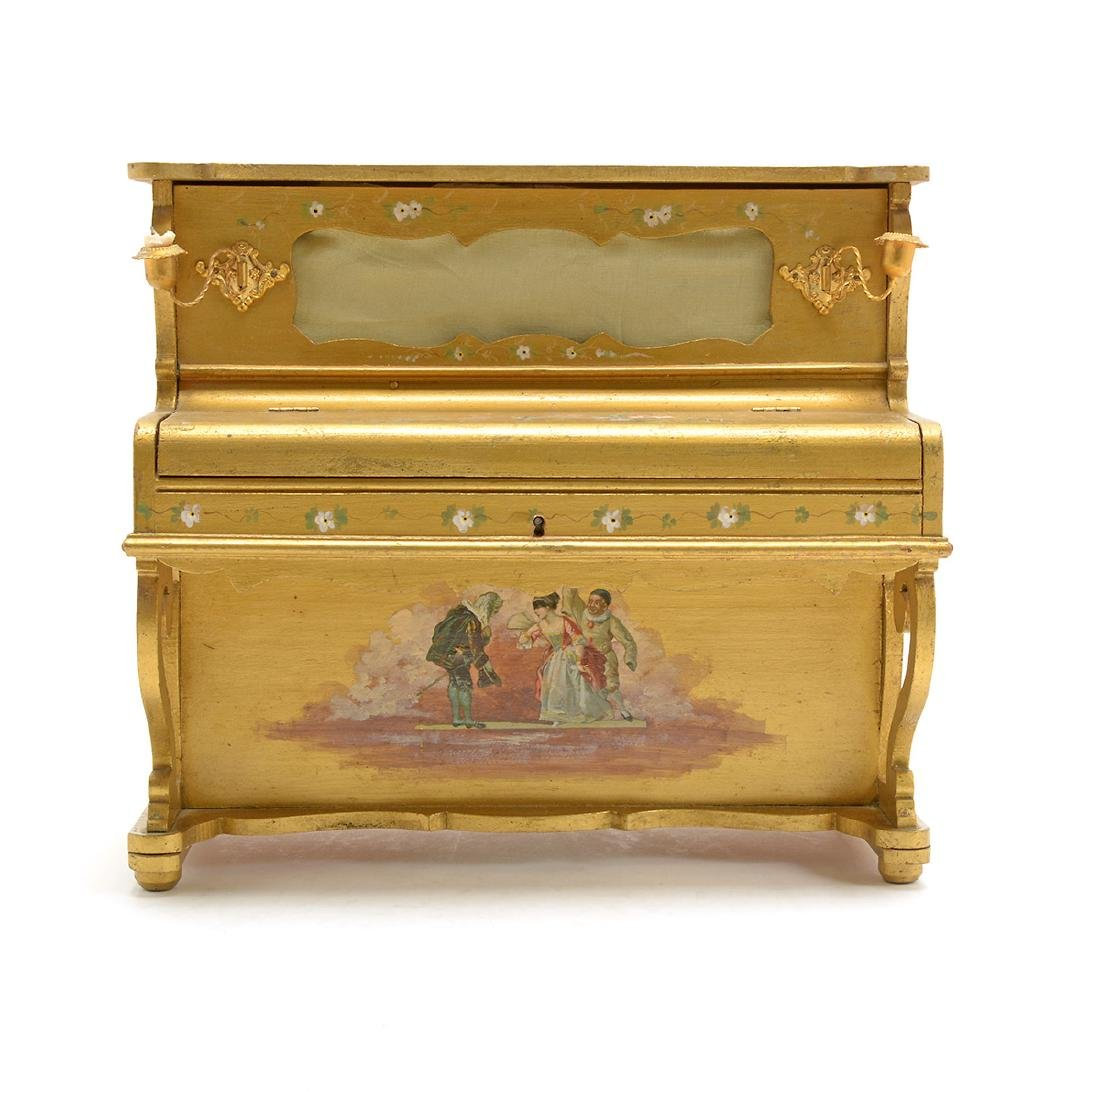 Swiss Gilt Vernis Martin Painted Miniature Piano - 2